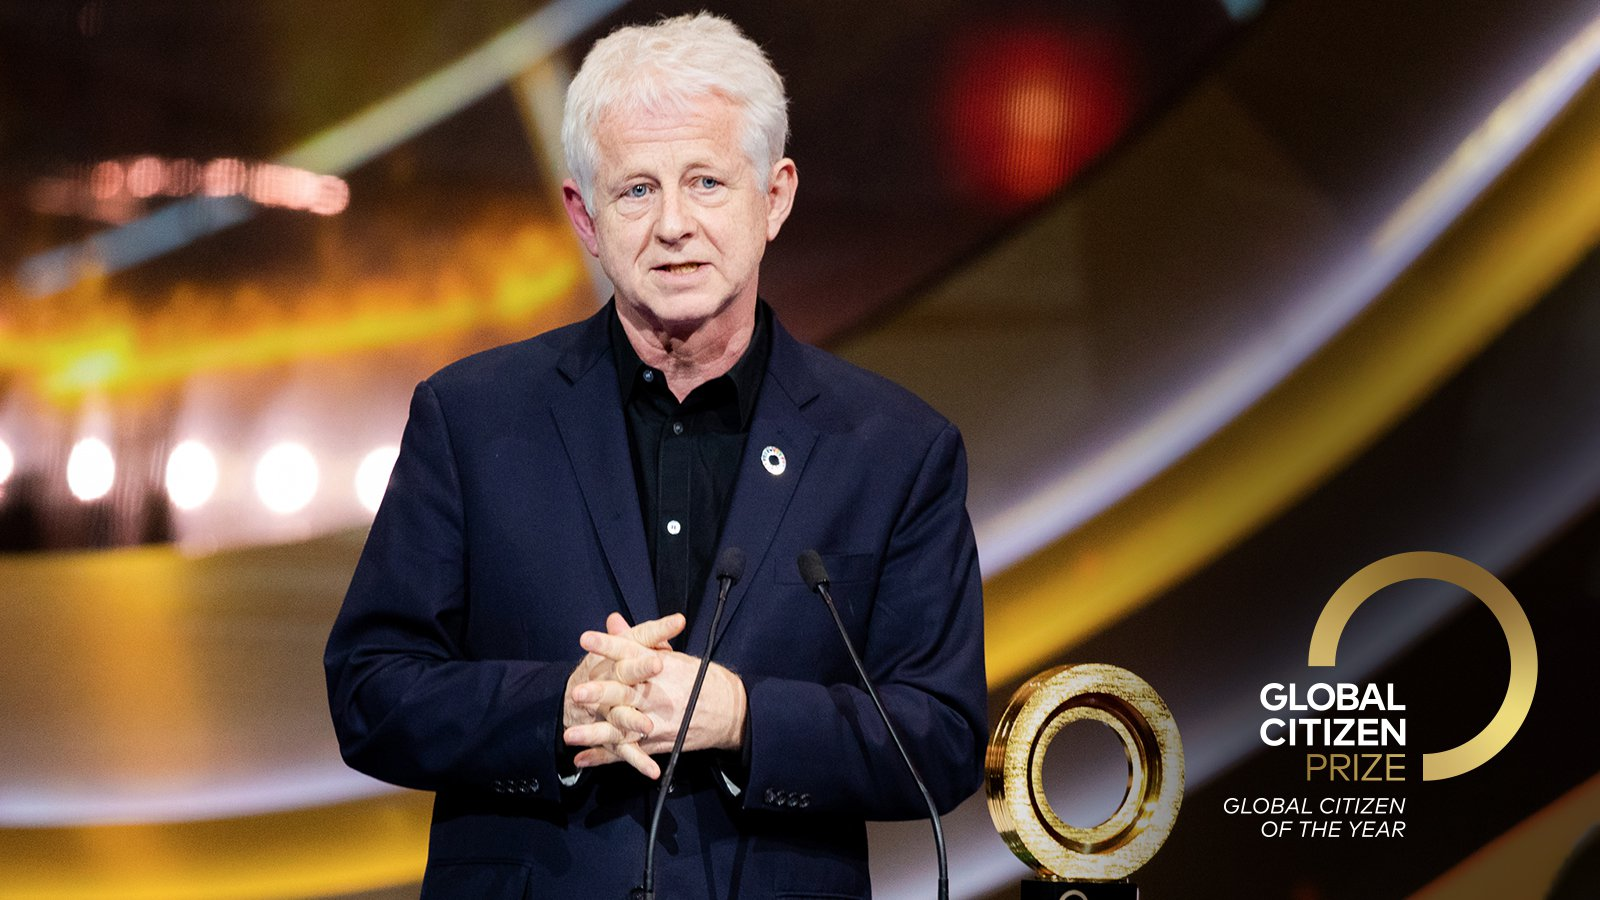 Global Citizen of the Year Award Winner 2019 - Richard Curtis